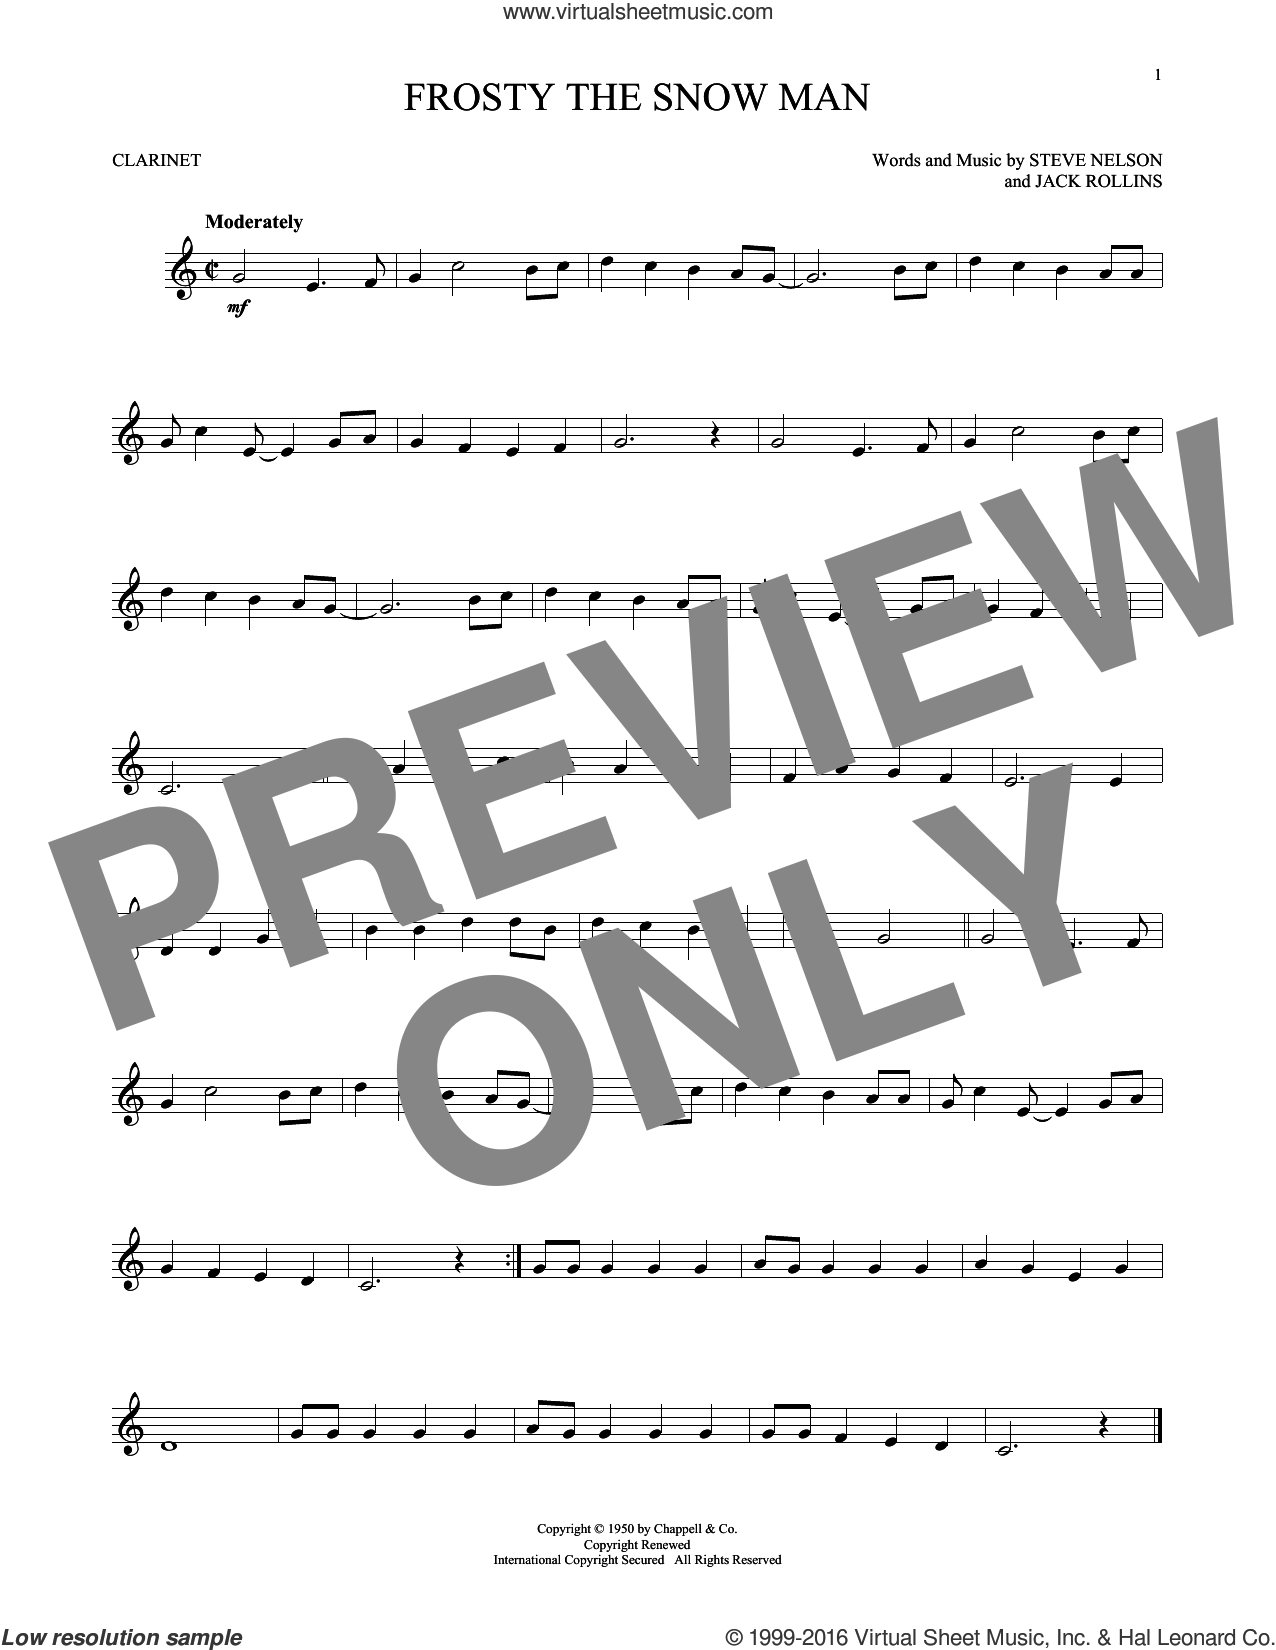 Frosty The Snow Man sheet music for clarinet solo by Steve Nelson